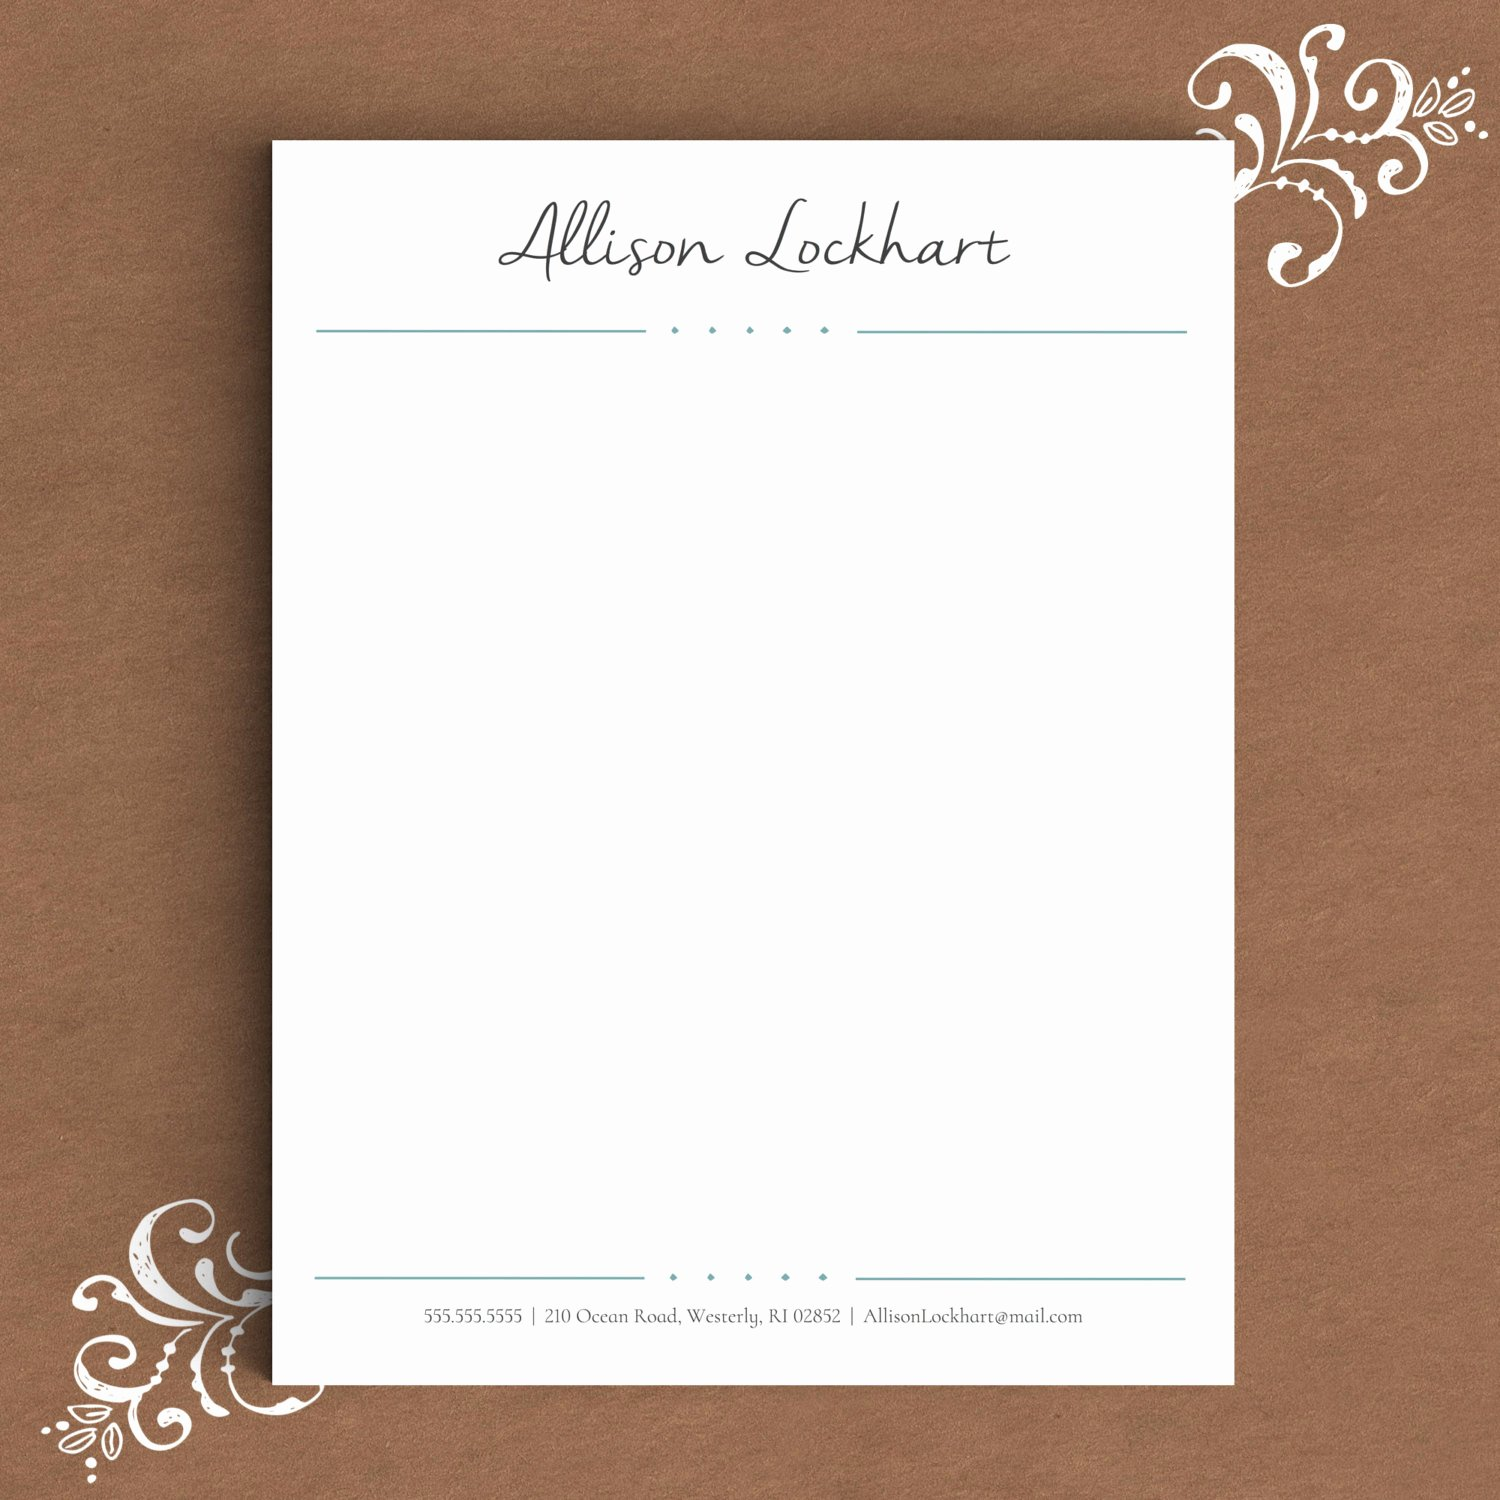 Letterhead Template for Word Diy Custom Letterhead